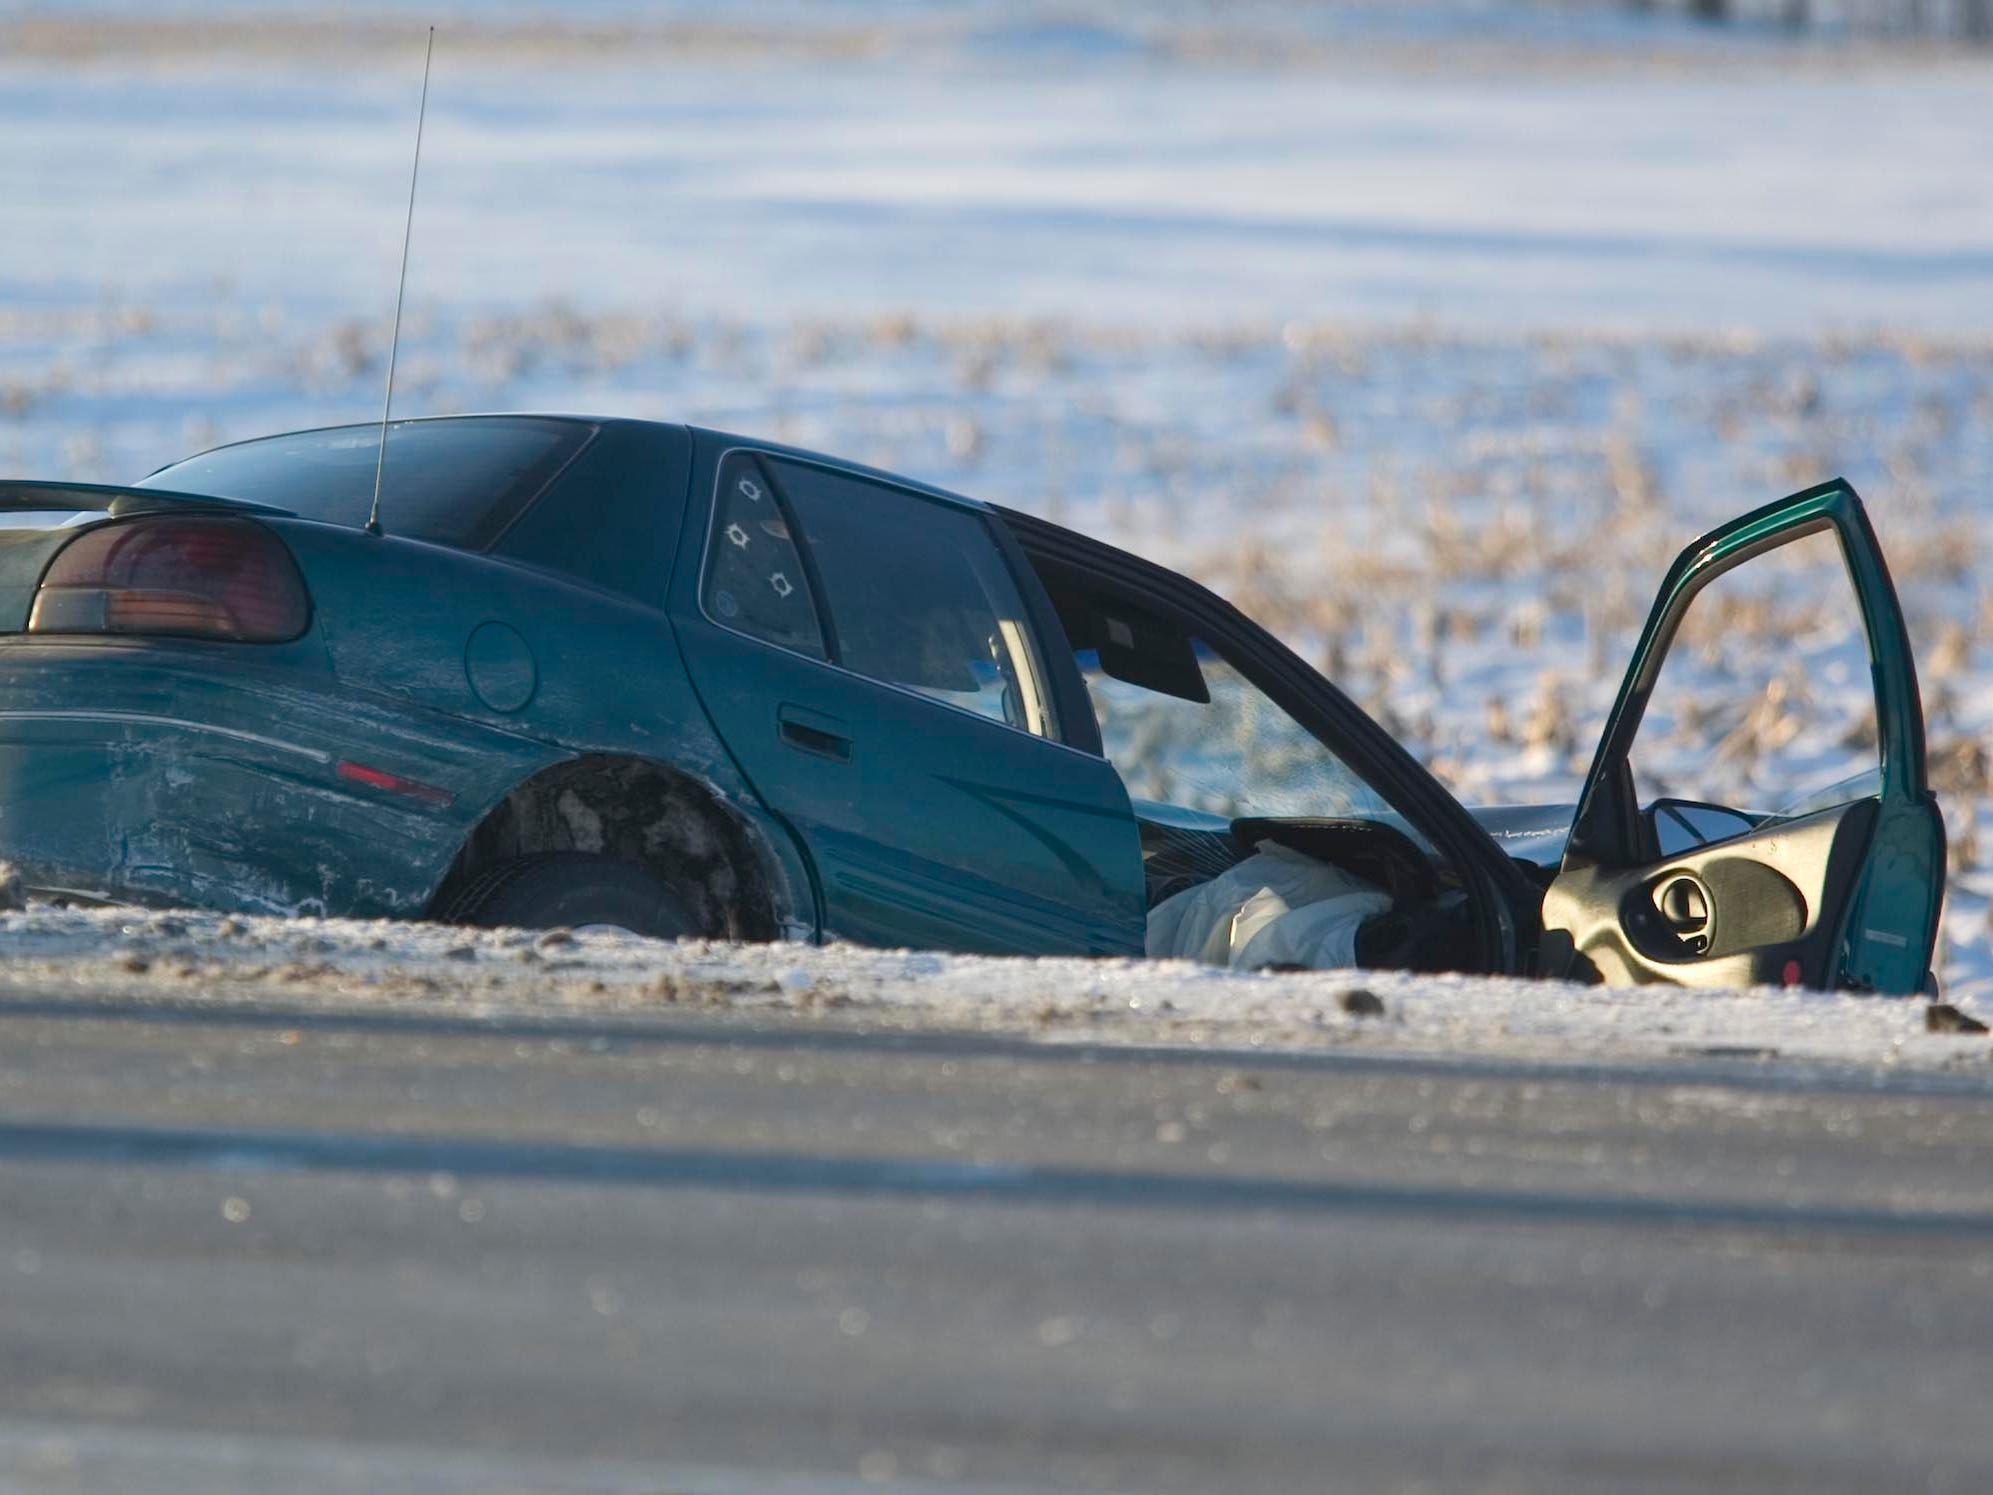 A vehicle involved in the multiple car collision Friday January 16, 2009 at state Highway 23 and County U sits in a ditch at the scene. Officials closed a section of state Highway 23 to take care of the crash. Photo by Gary C. Klein/The Sheboygan Press